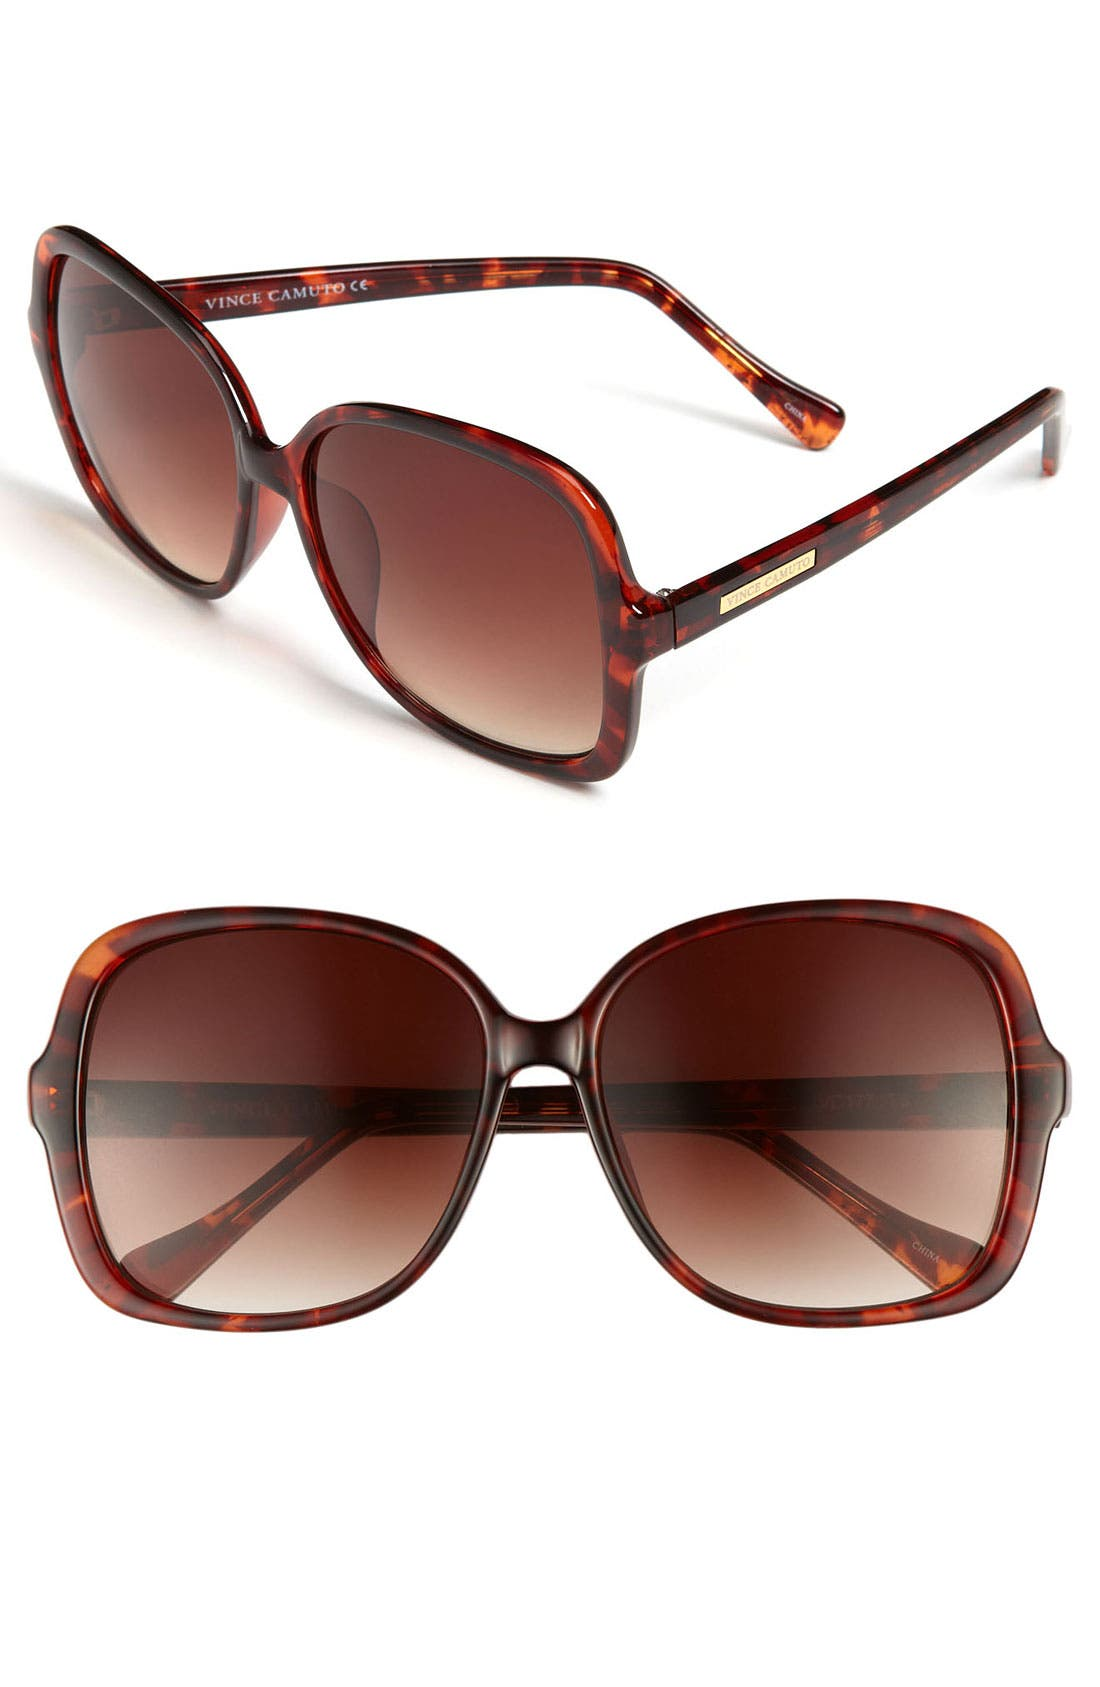 Alternate Image 1 Selected - Vince Camuto 60mm Gradient Sunglasses